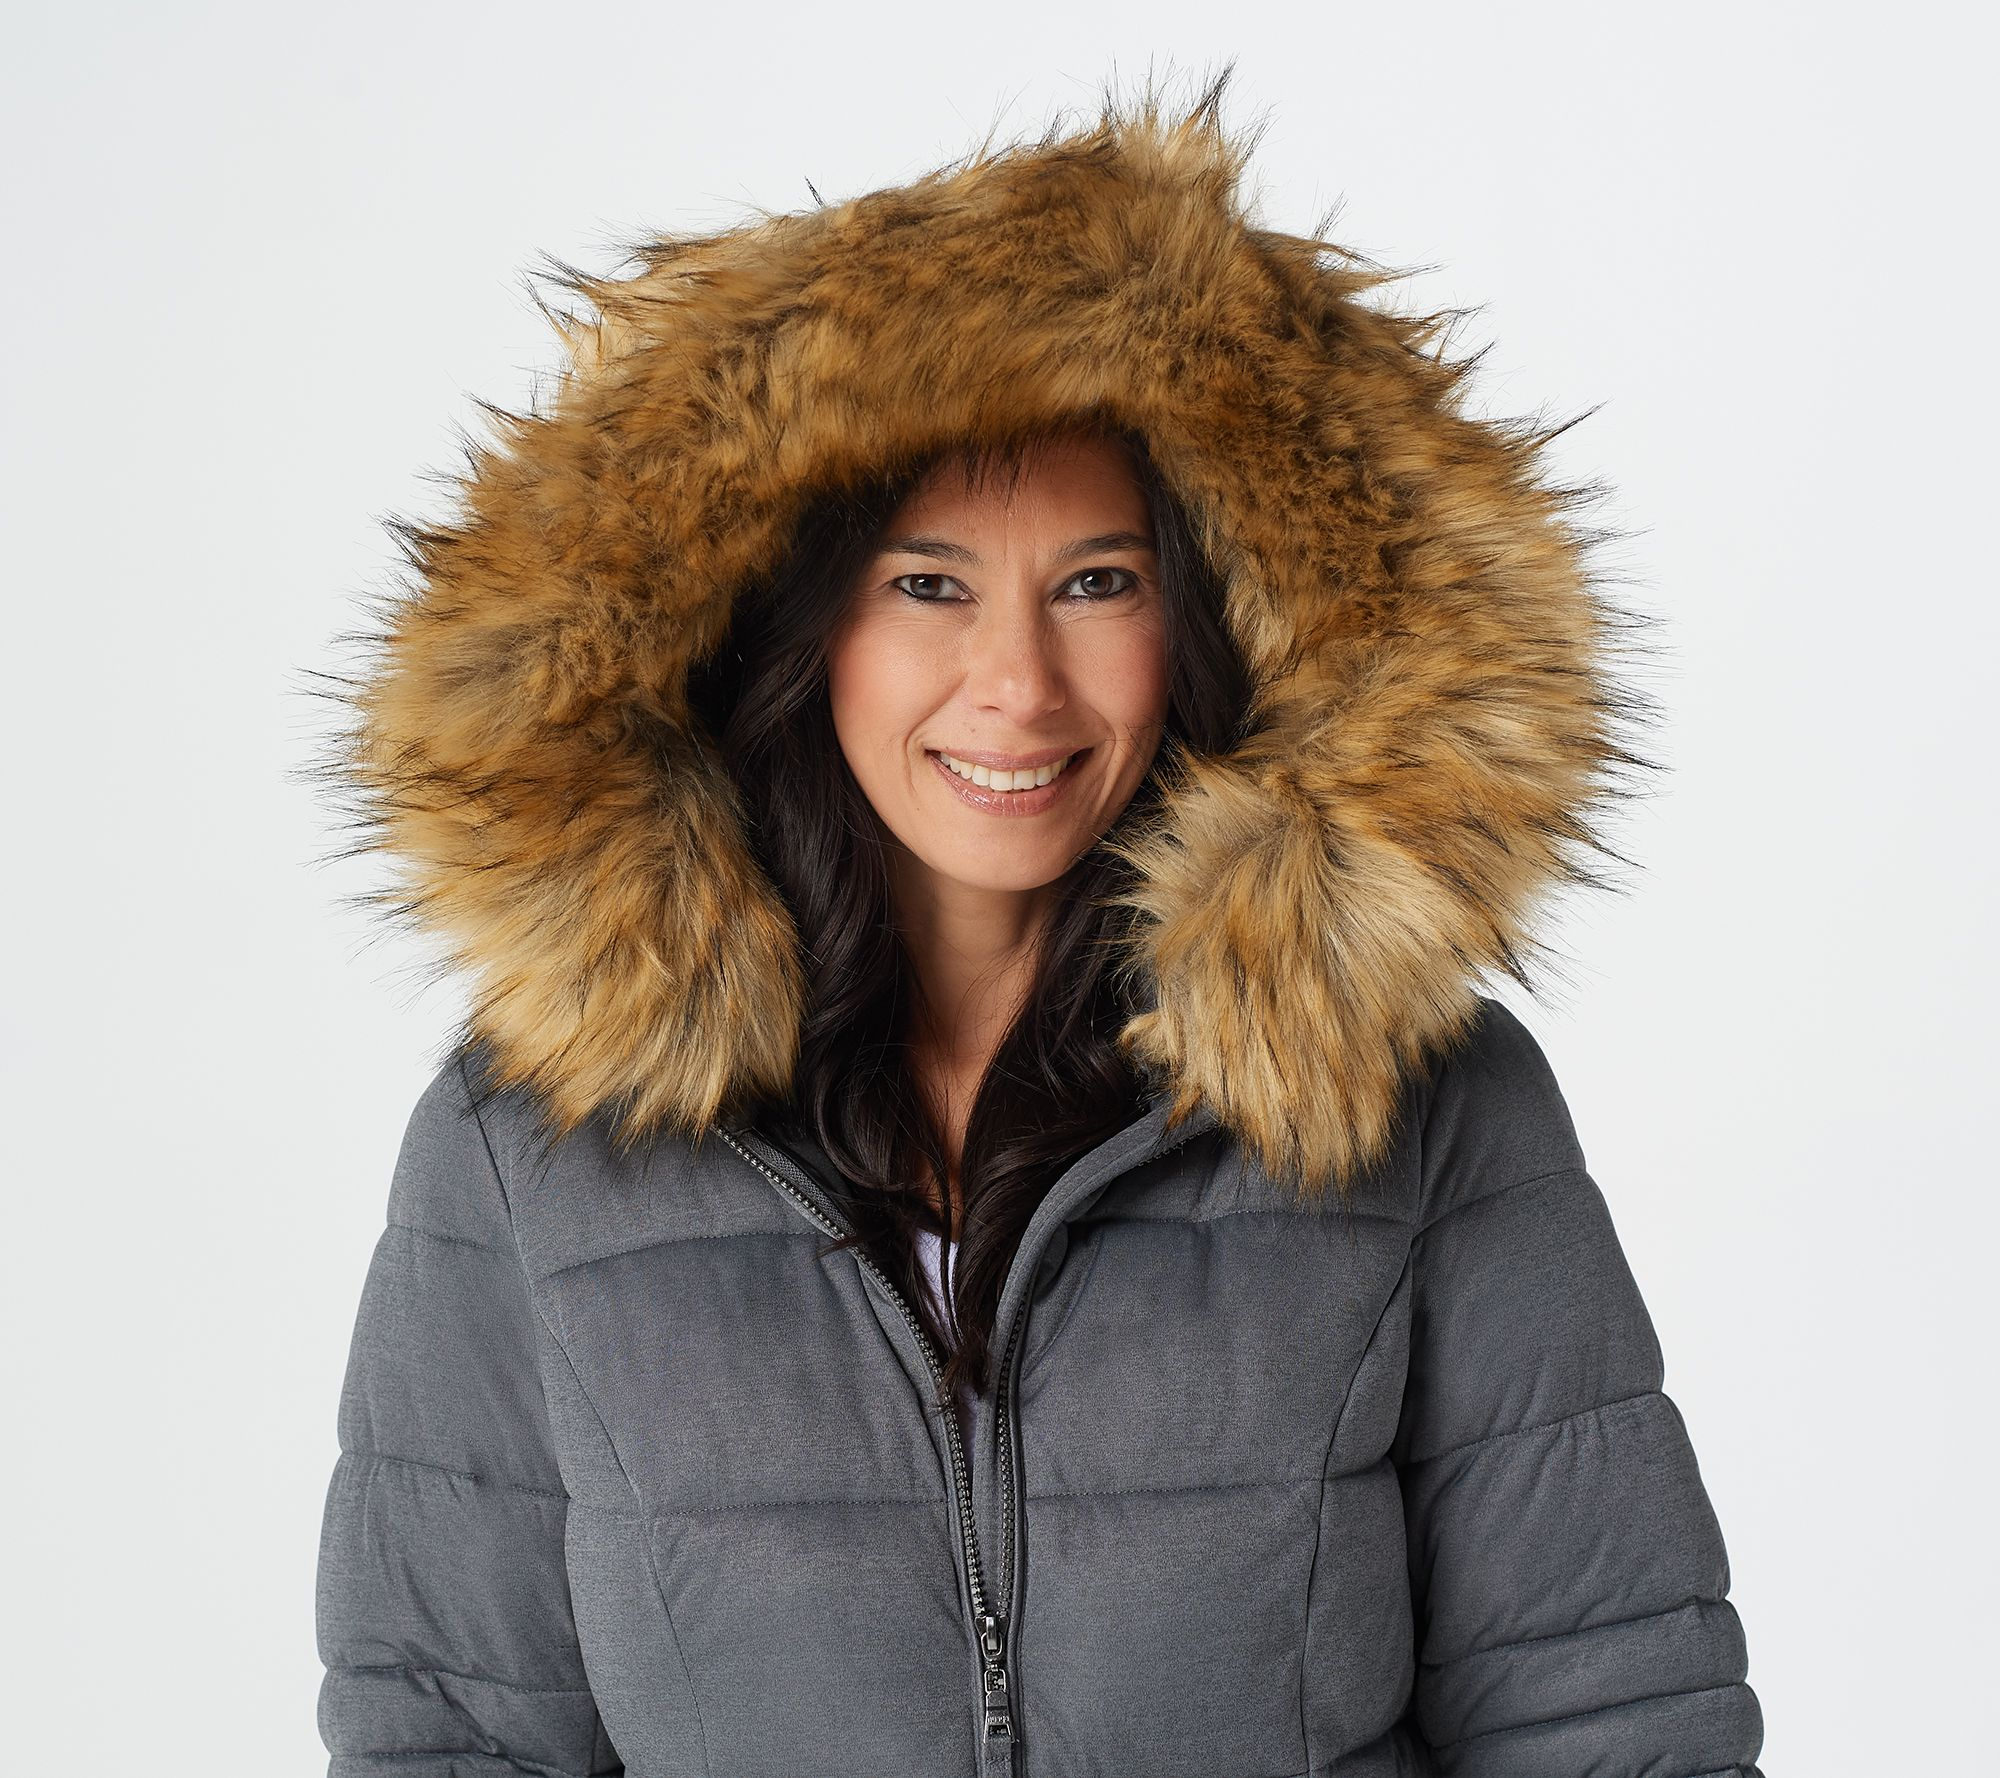 cfb83cfb369 Nuage Stretch Puffer Coat with Removable Hood   Faux Fur - Page 1 ...